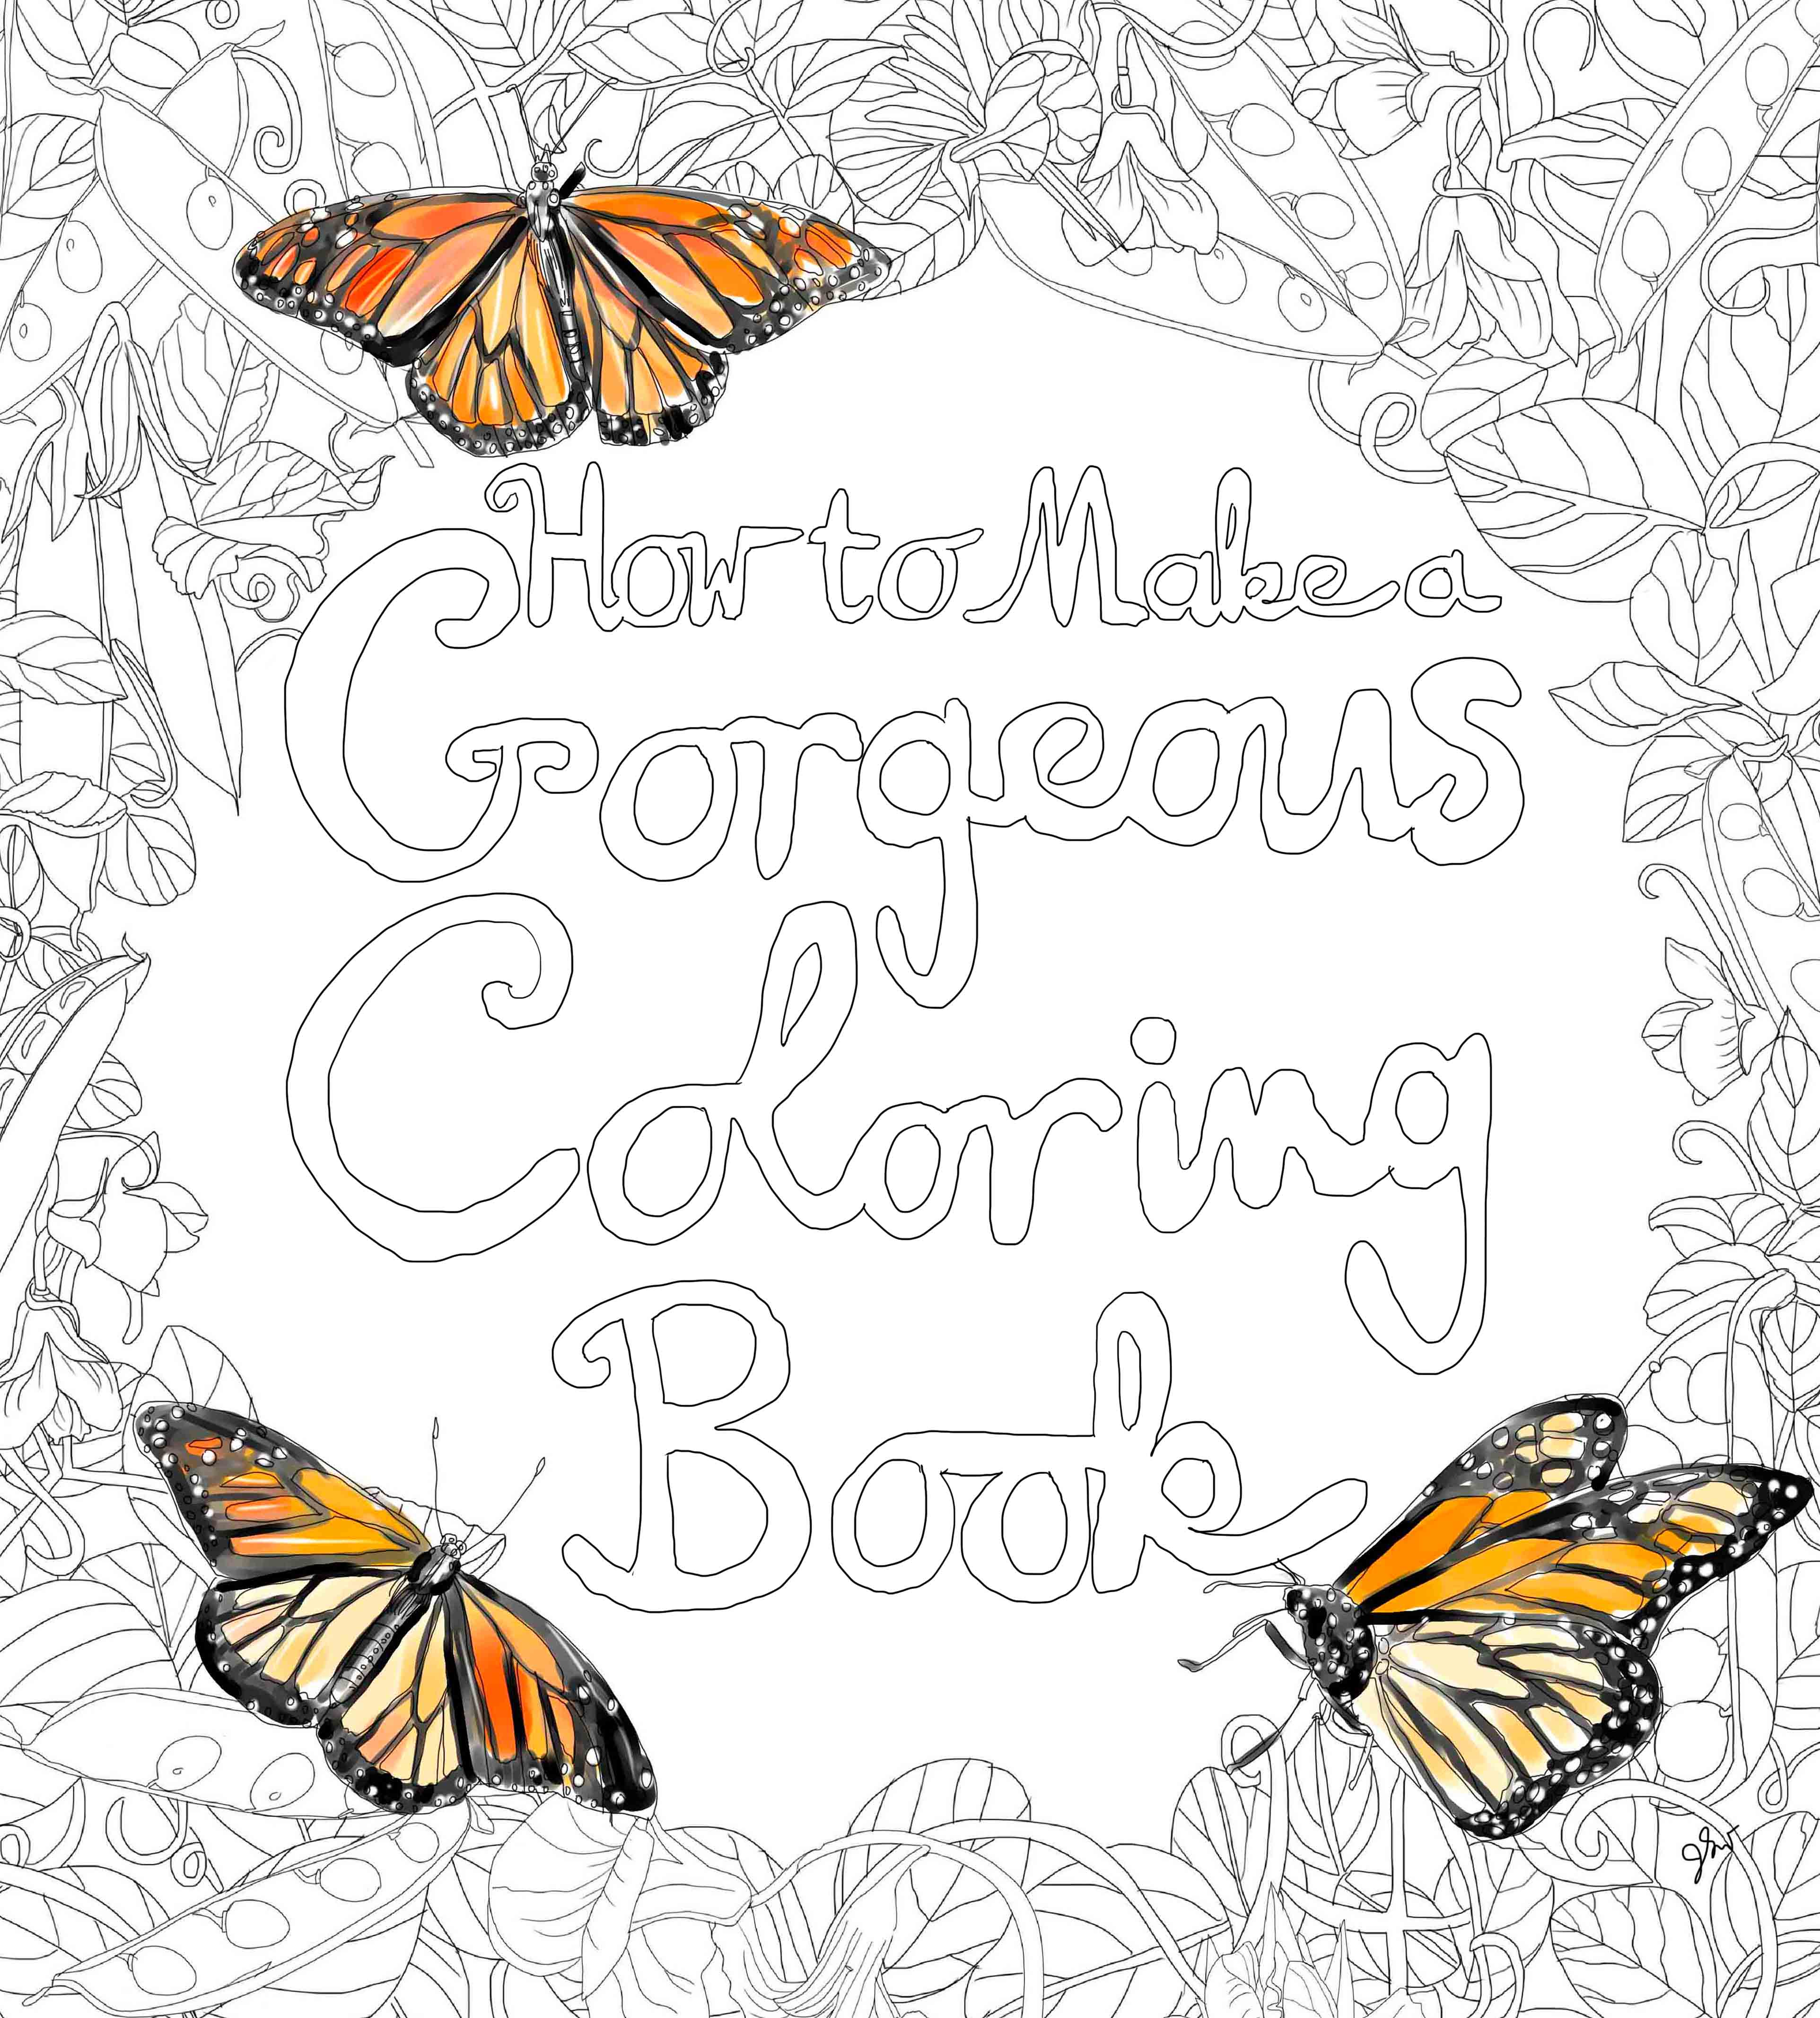 Charming Free Barbie Coloring Pages Big Adult Color Books Rectangular Position Coloring Book Fashion Coloring Book Old Halloween Coloring Books GrayColor Swatch Book How To Make A Gorgeous Coloring Book: 5 Insider Tips | Thefrancofly